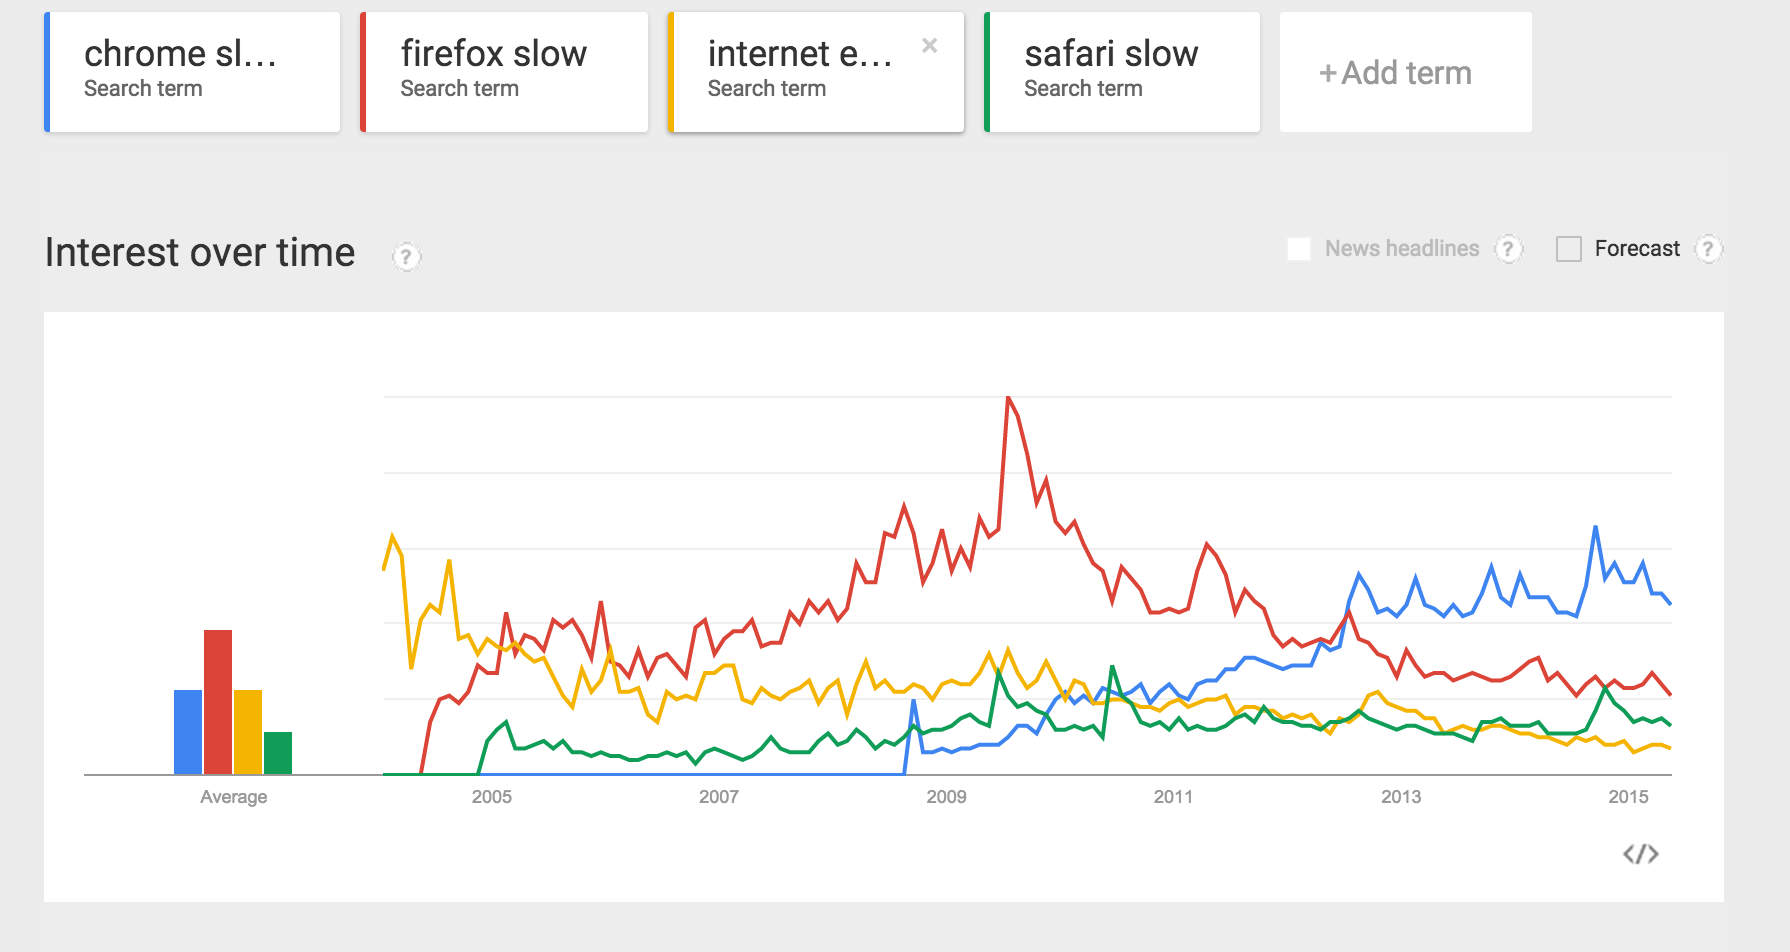 Google Trends searches for Chrome slow